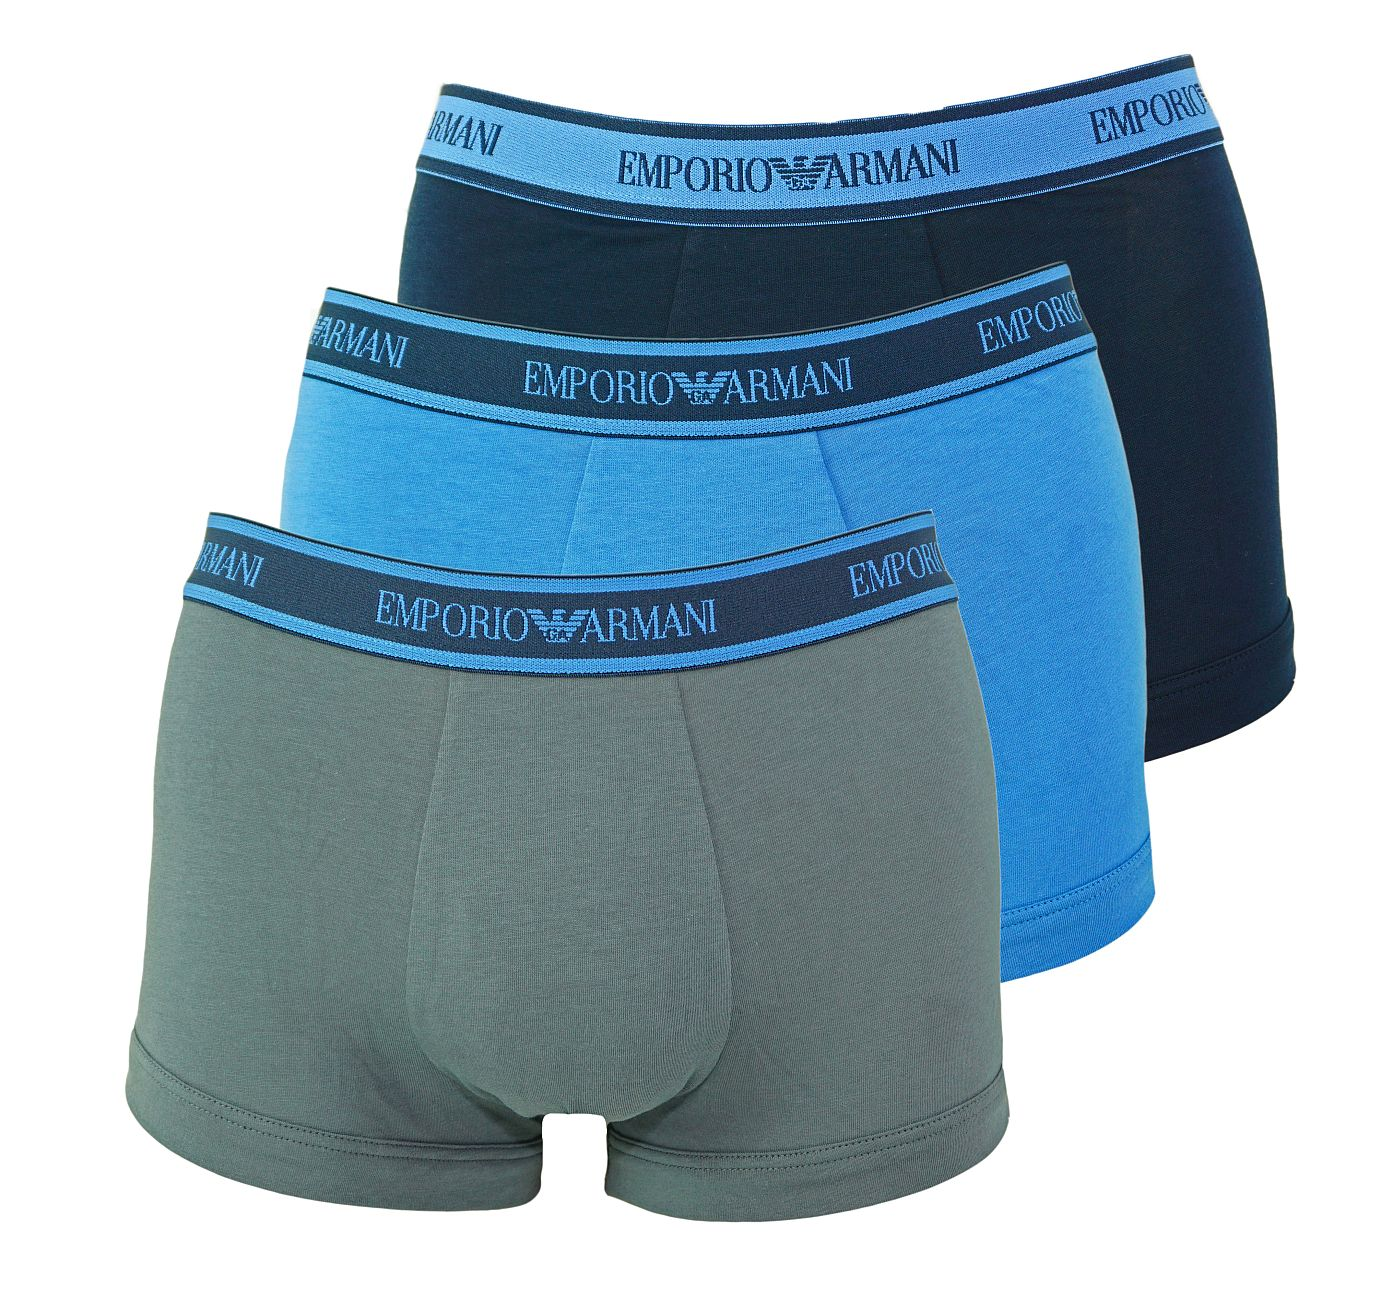 Emporio Armani 3er Pack Trunks Shorts 111357 8A717 54935 MARINE/AVIO/ANTRAC. SH18-AT1